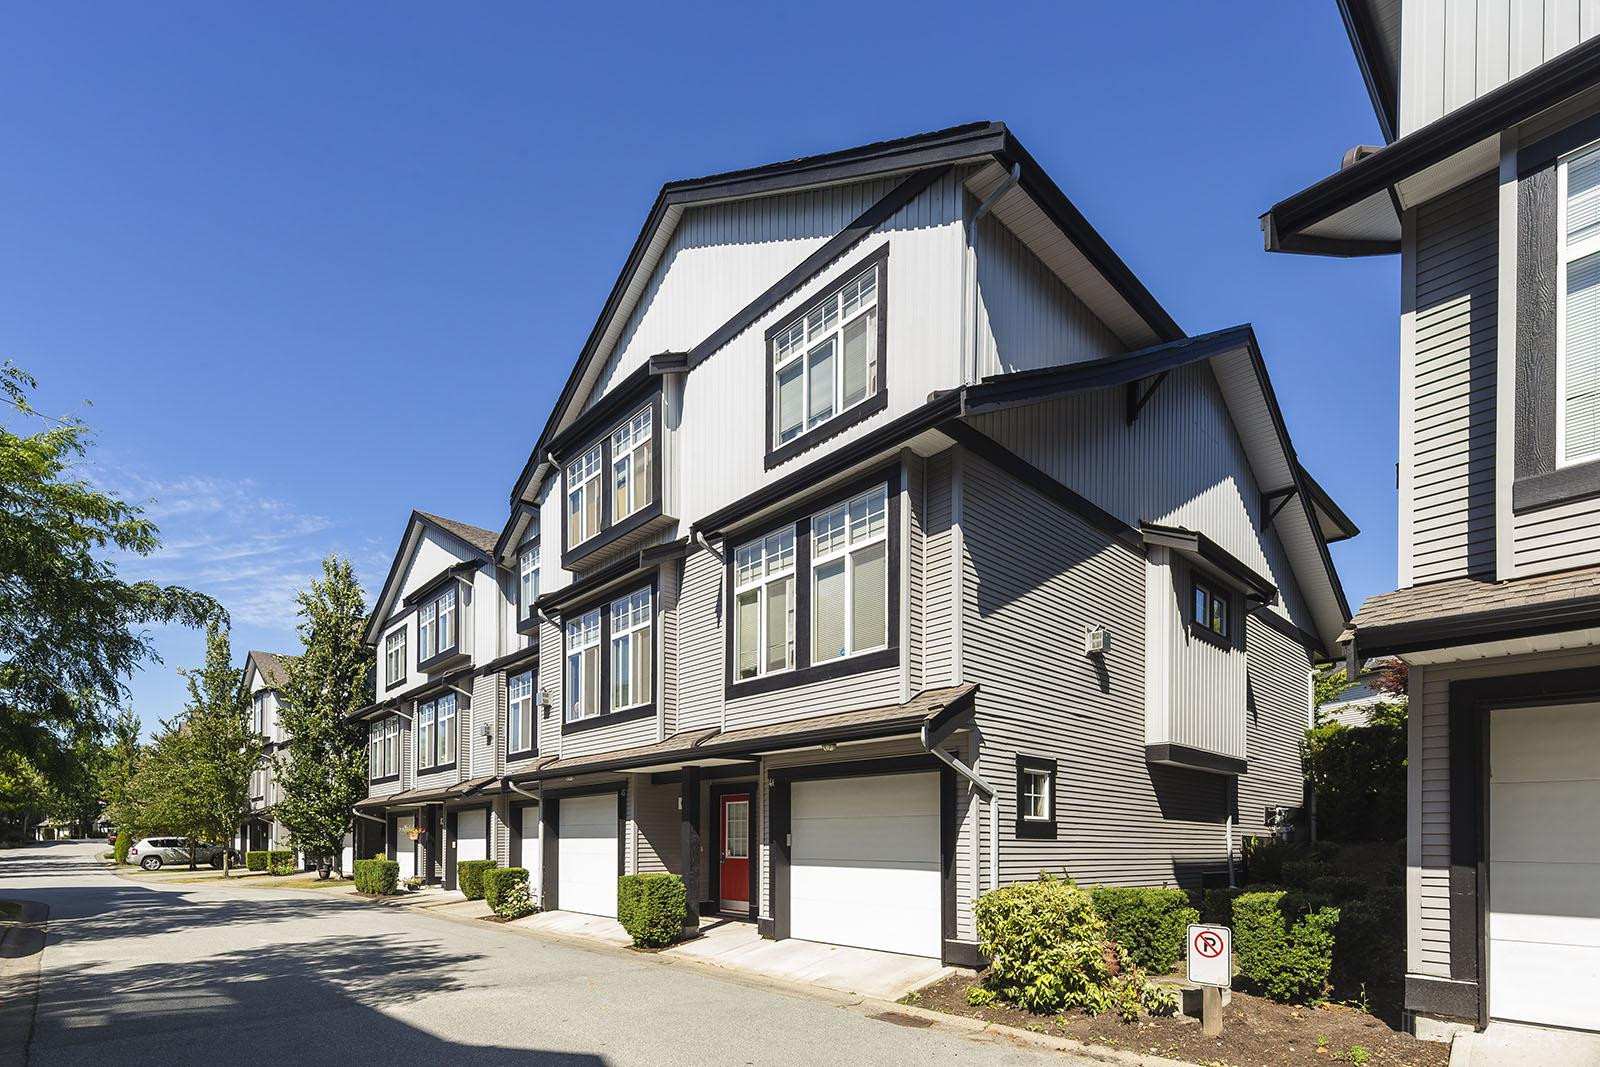 Starpoint at 18828 69 Ave, Surrey 0